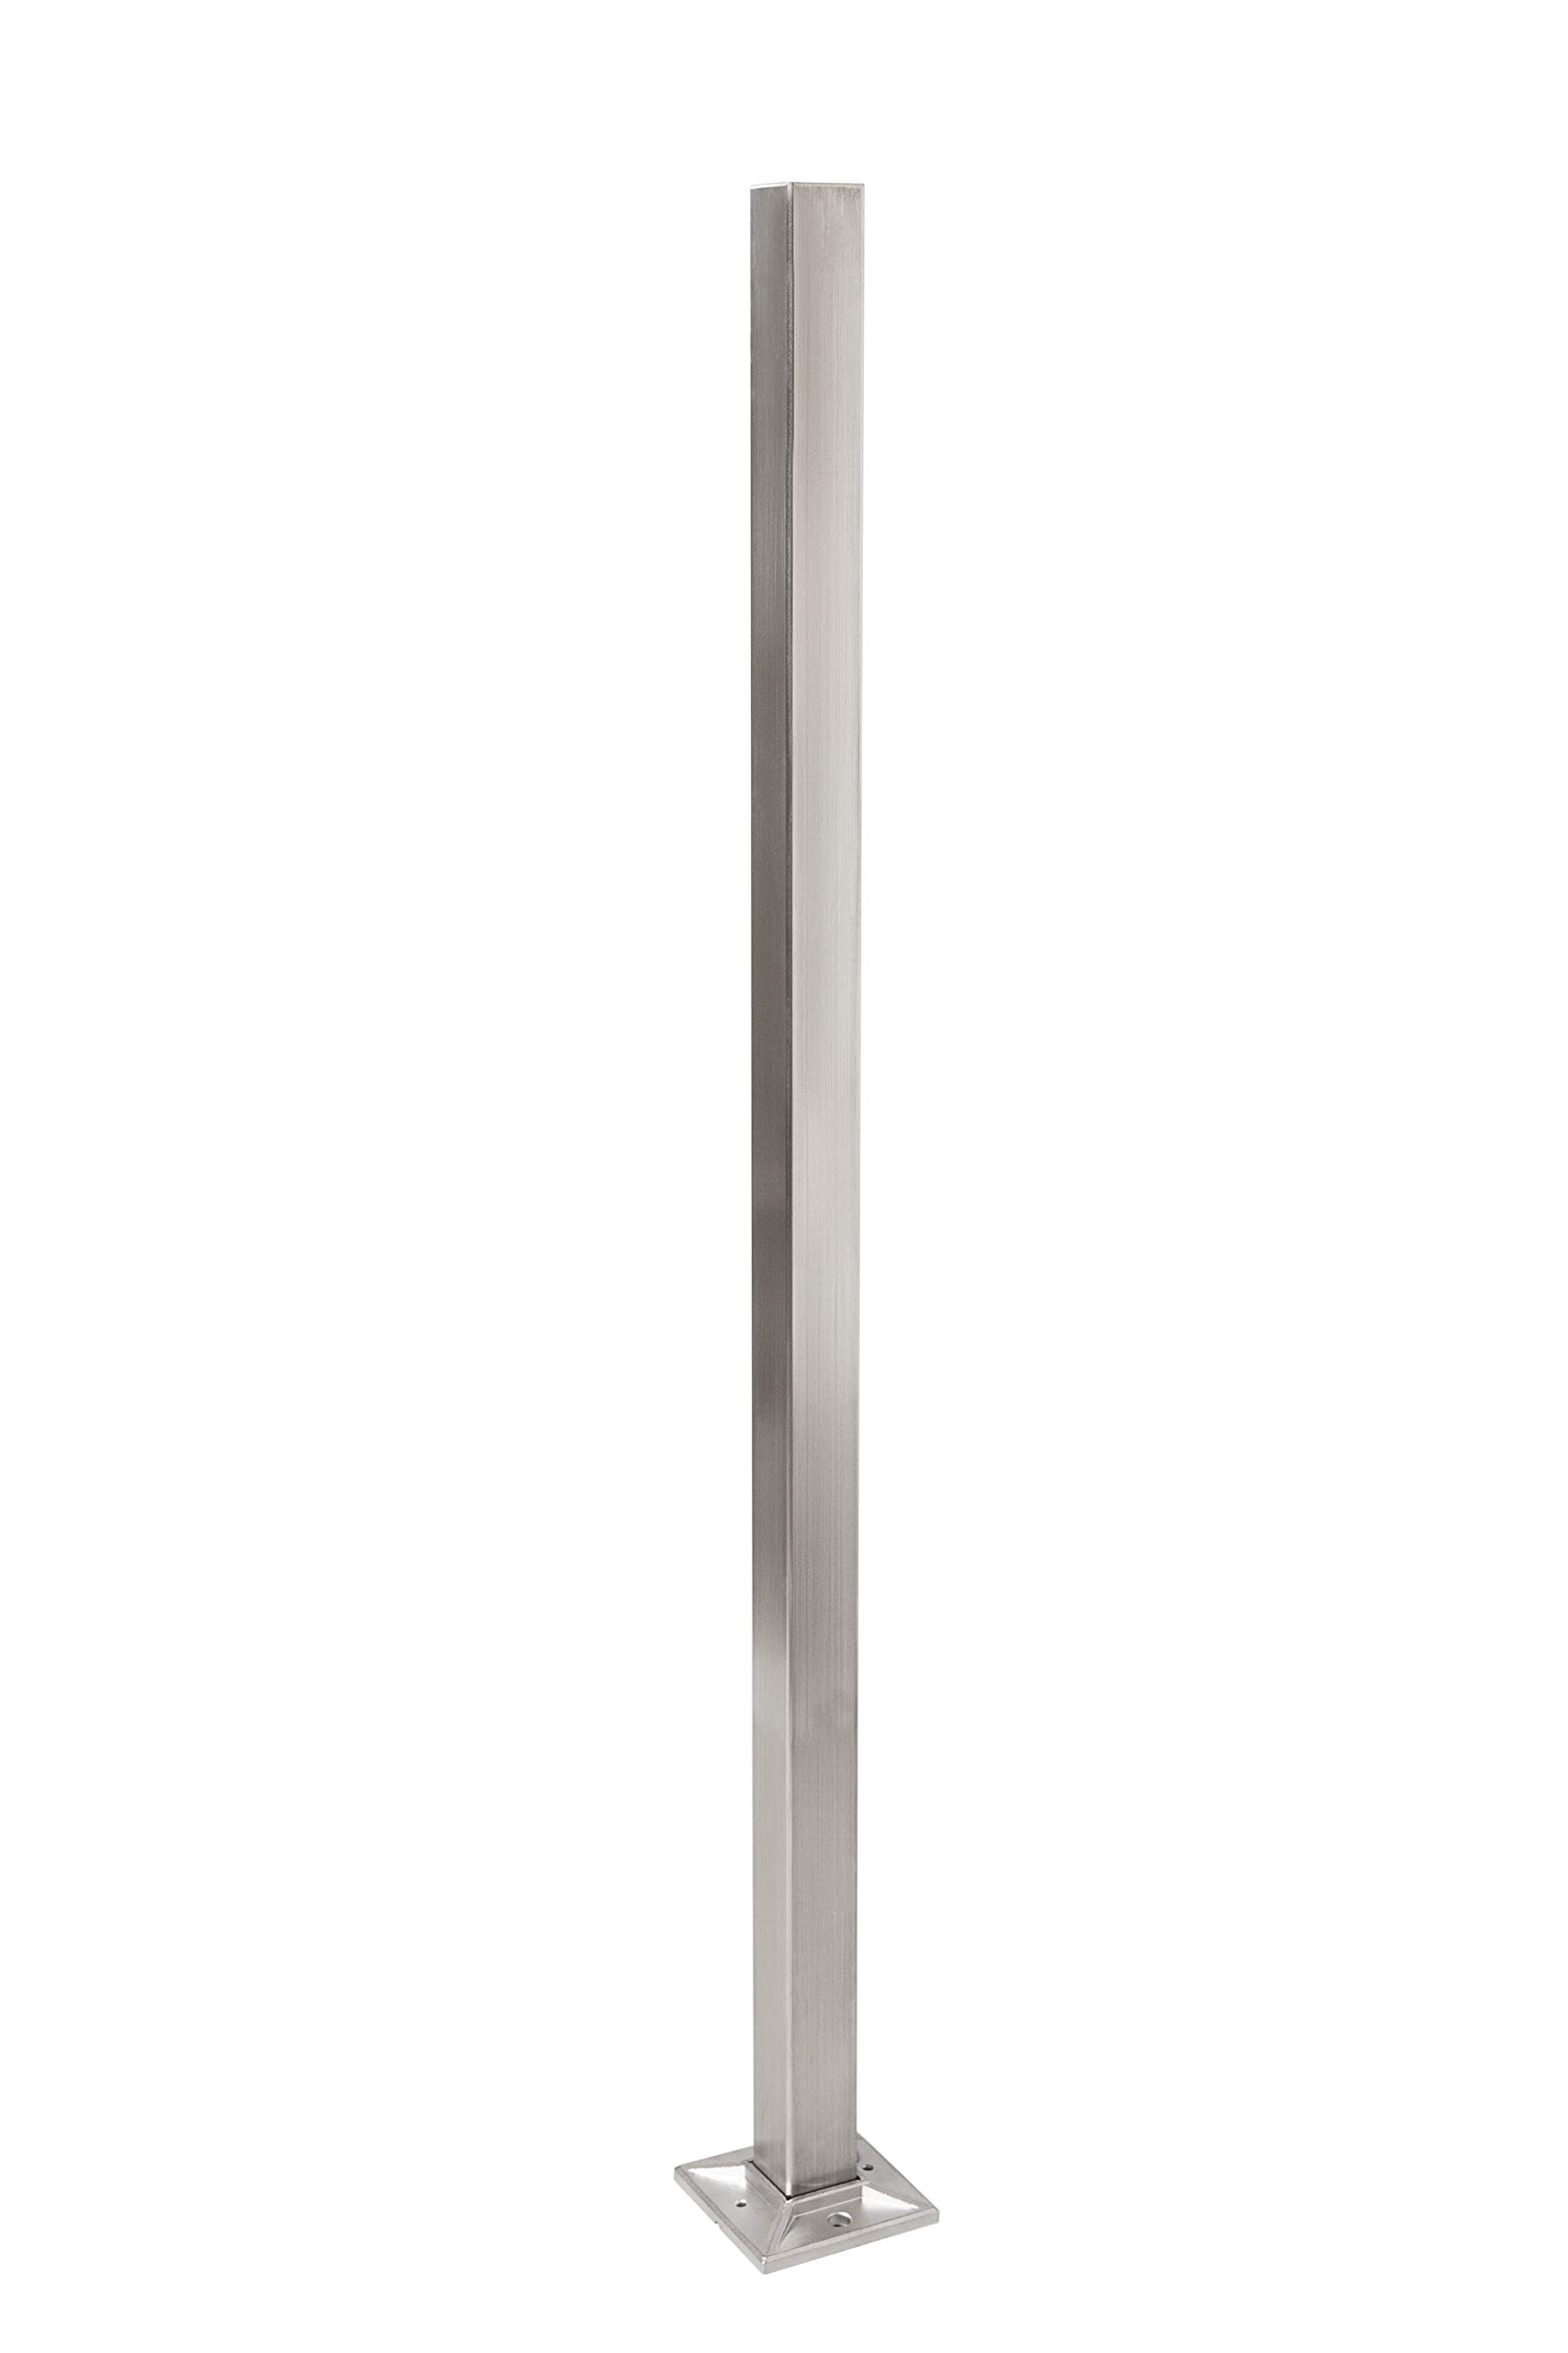 Stainless Steel Newel Post - 39 x 1.5 Inch - 44mm Square - Box of Two (Stainless) by Ascension Stair Parts